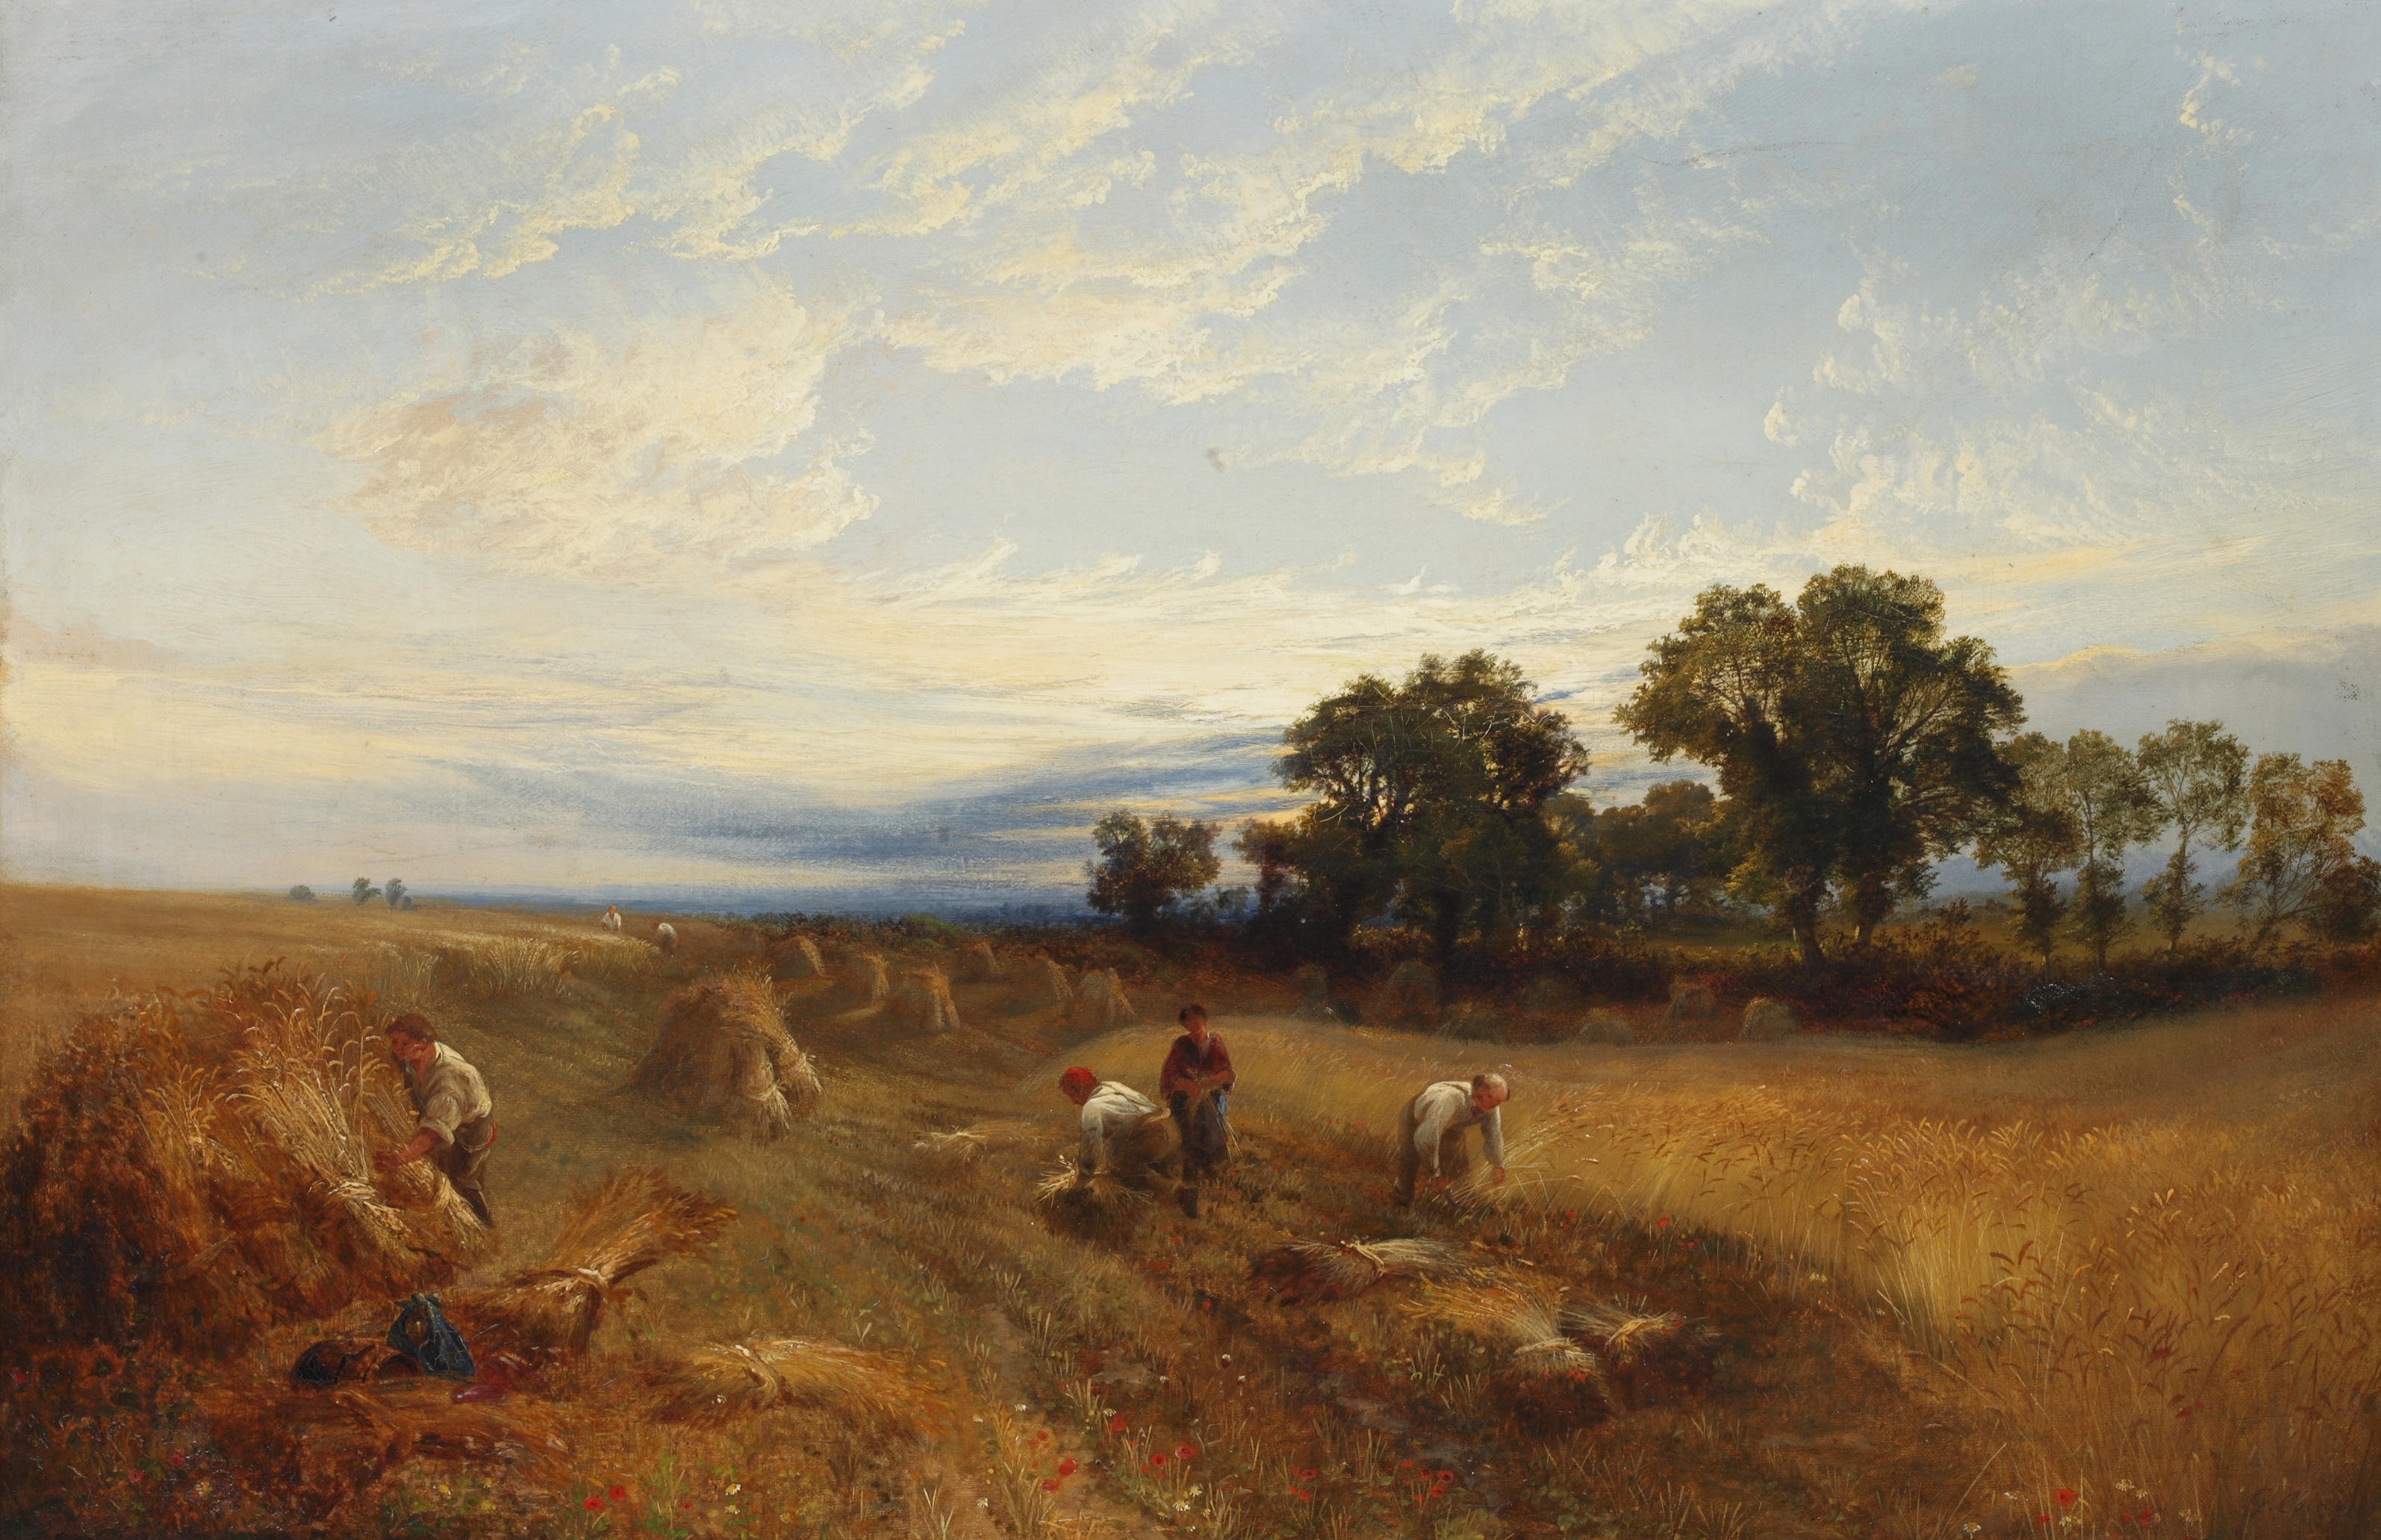 https://upload.wikimedia.org/wikipedia/commons/e/e0/George_Cole_-_A_Surrey_Harves_(1848).jpg